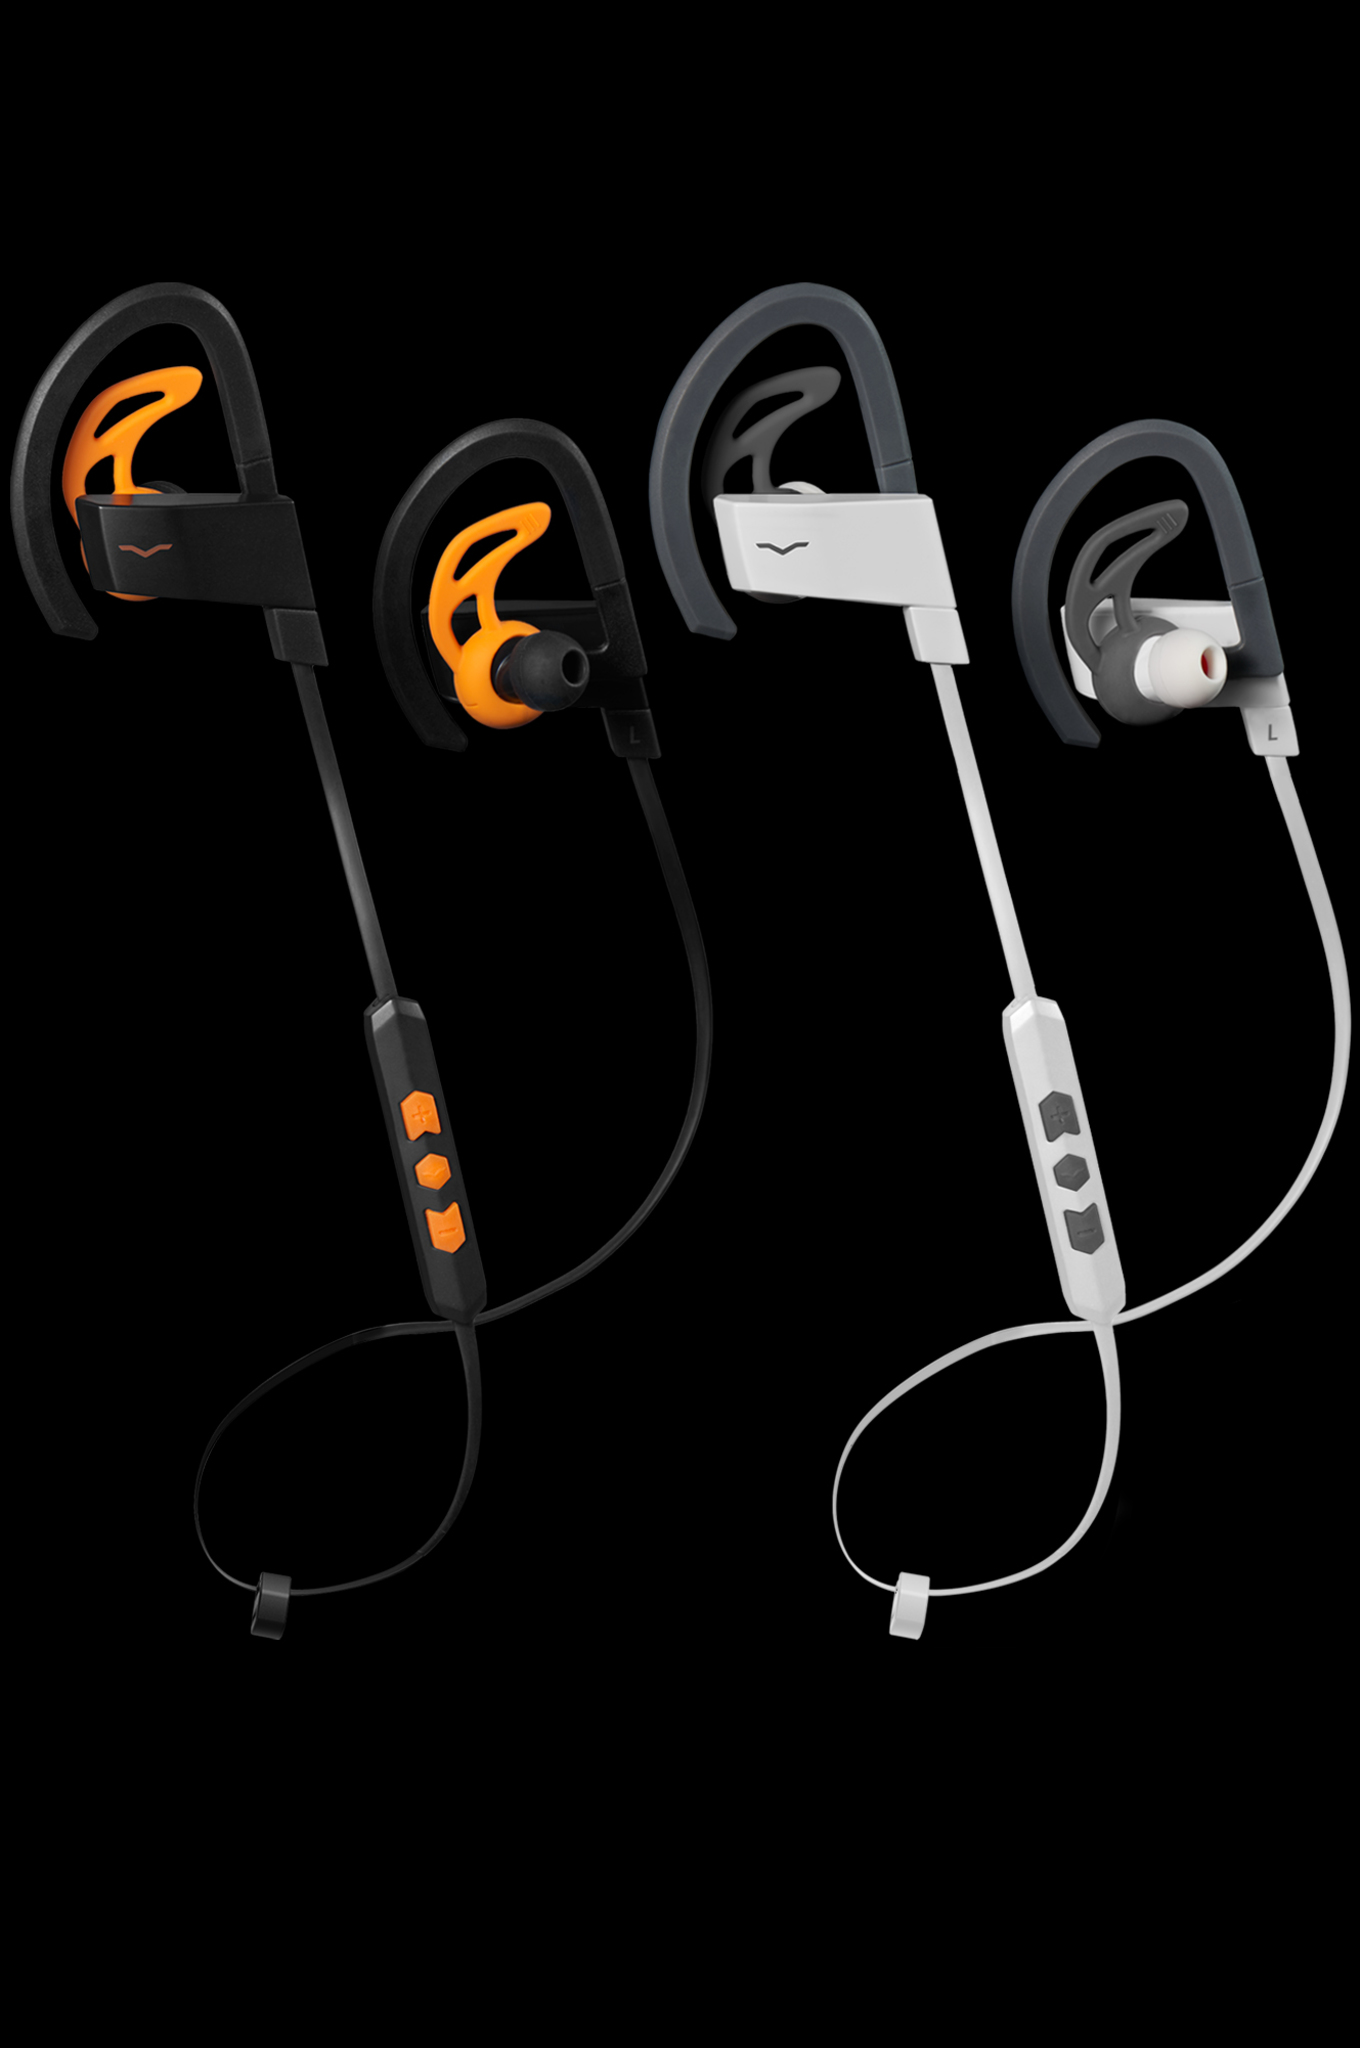 BassFit Wireless Sport In-Ear Headphones in Black and White